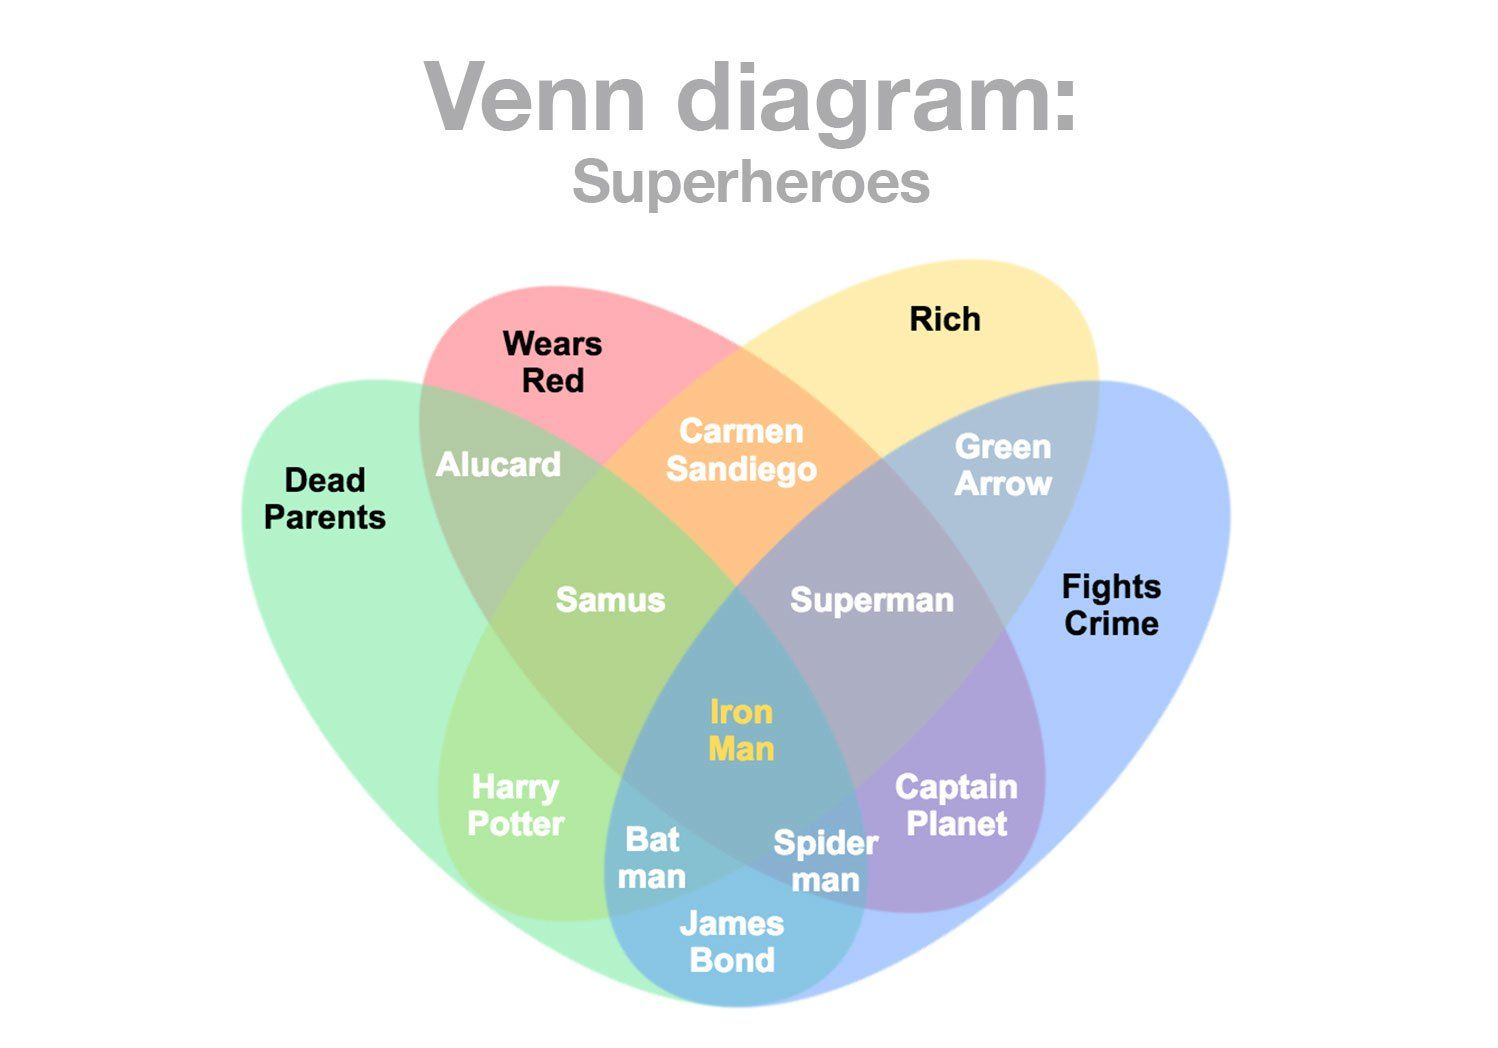 Venn Diagram Maker To Draw Venn Diagrams Online Manual Guide